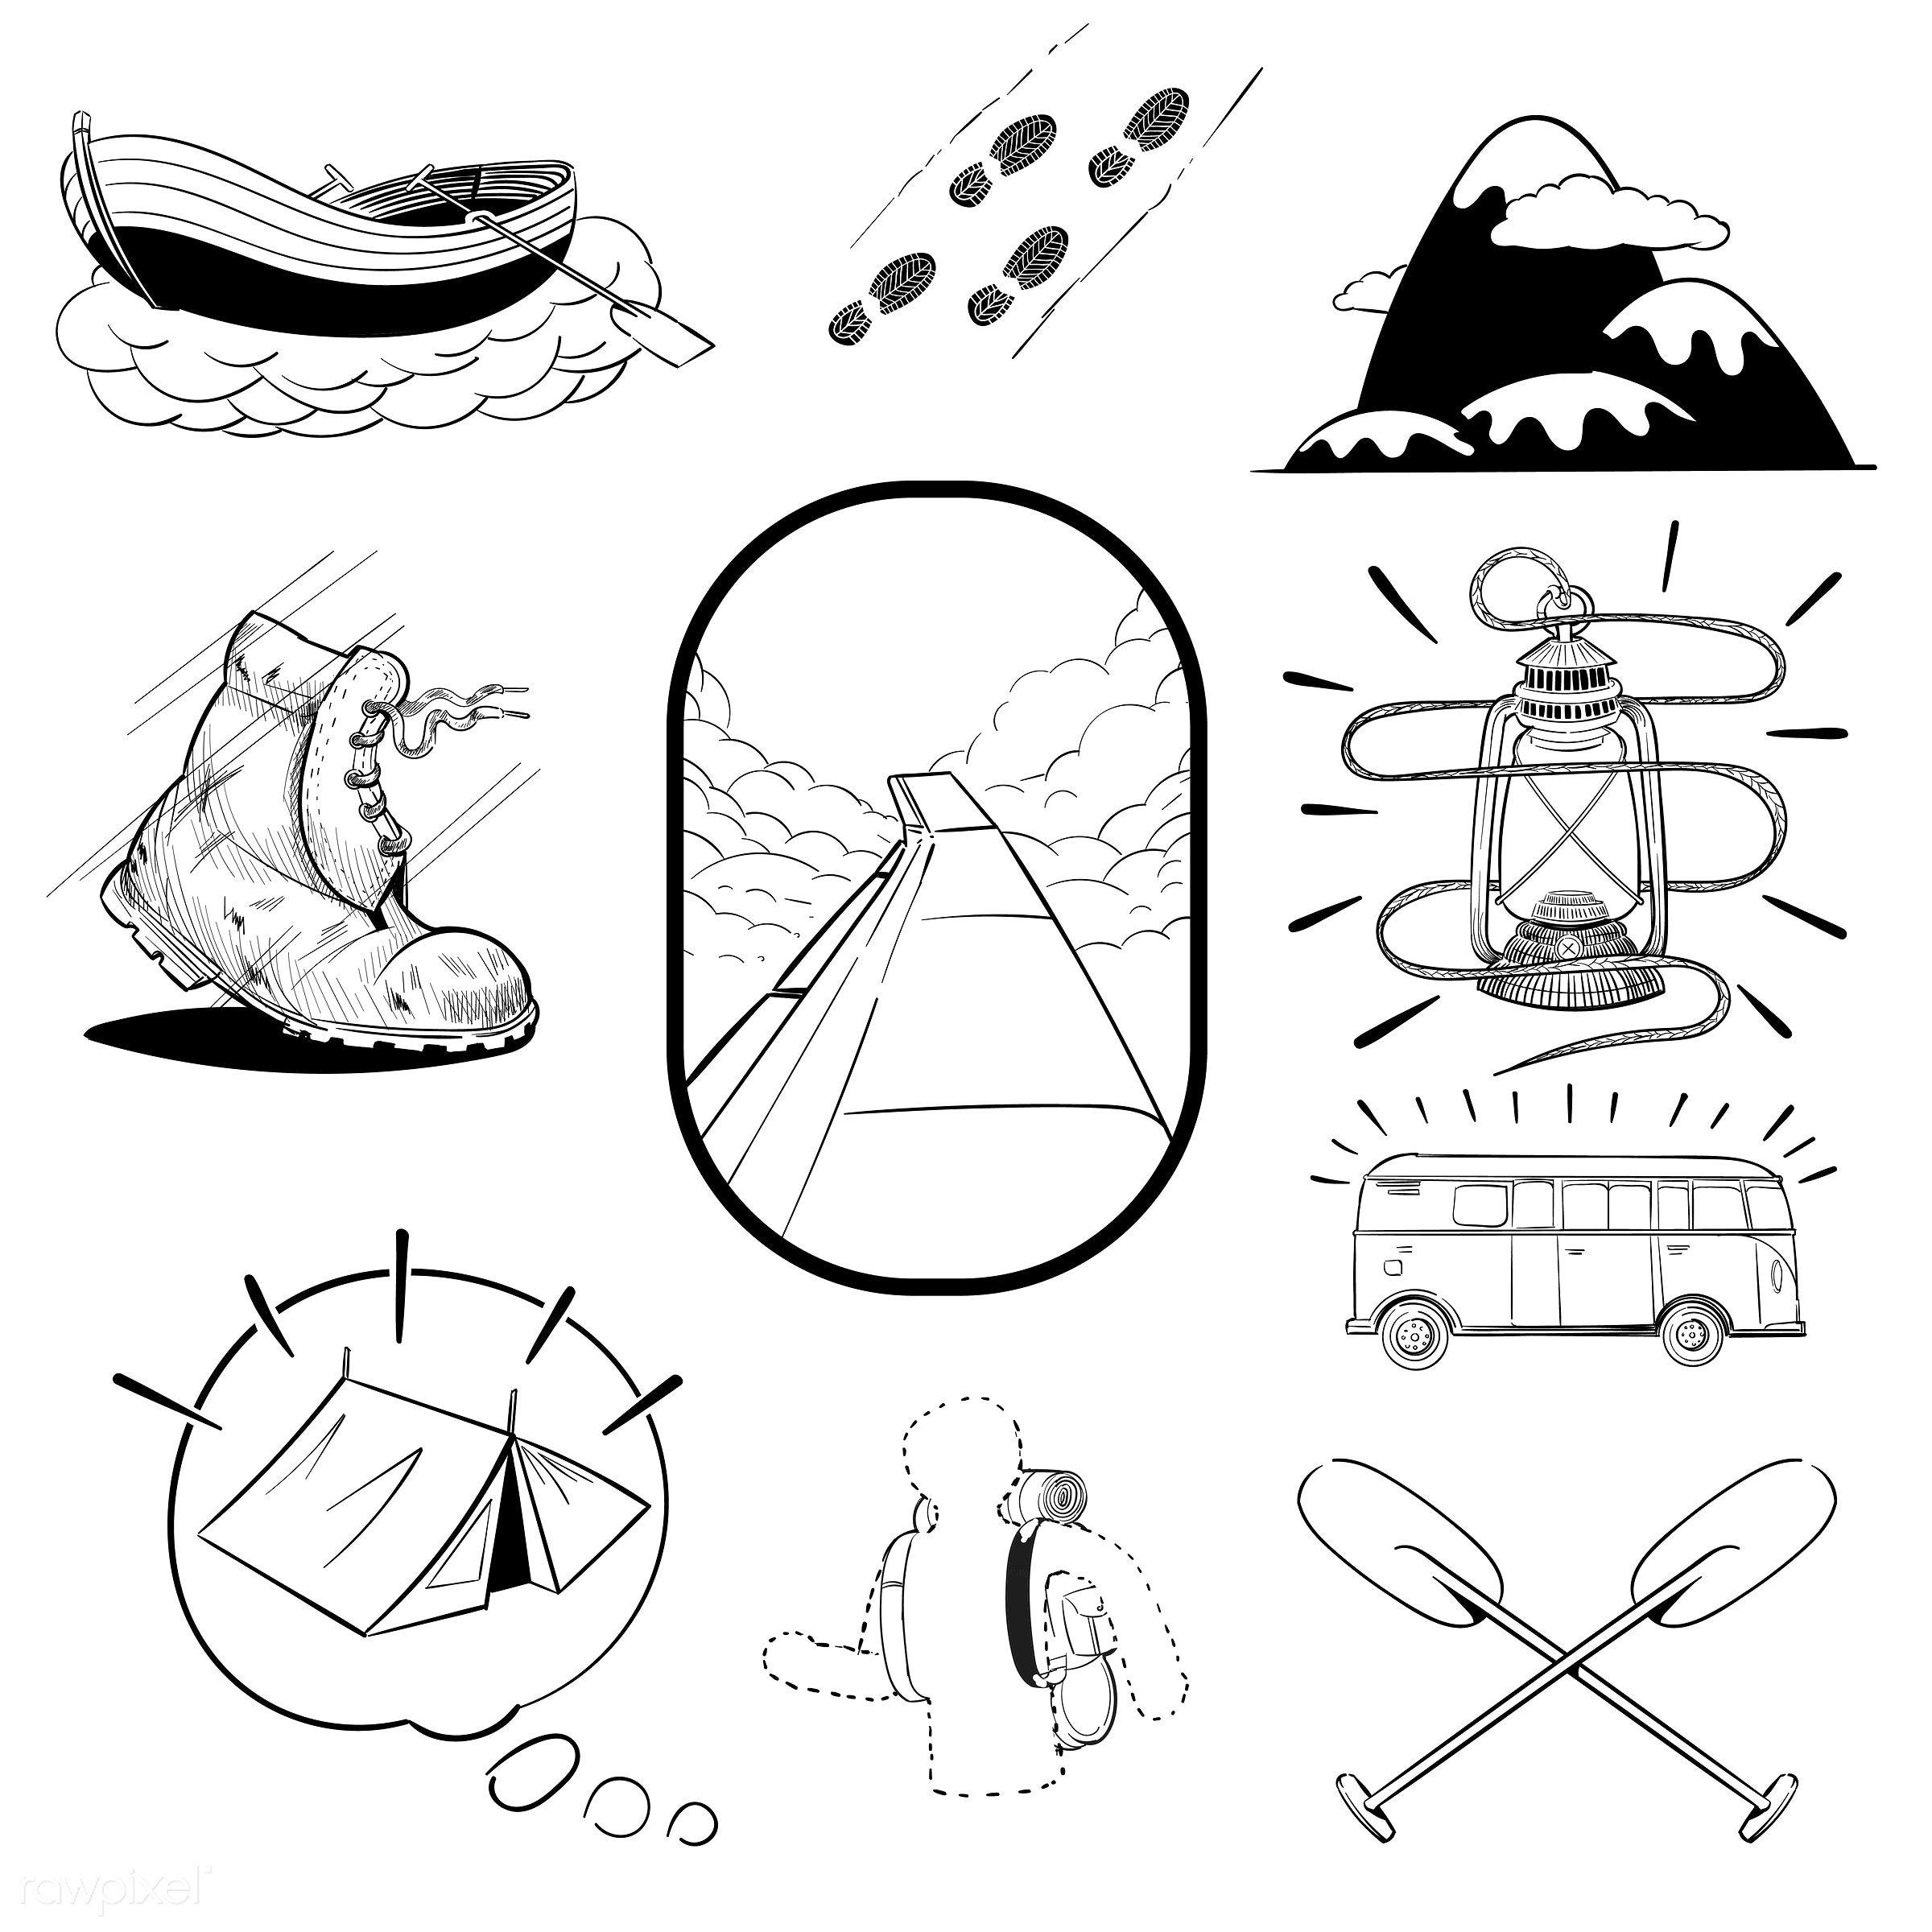 Hand drawing illustration set of wanderlust icons - camping, adventure, art, artwork, camp, collection, creative, creativity...